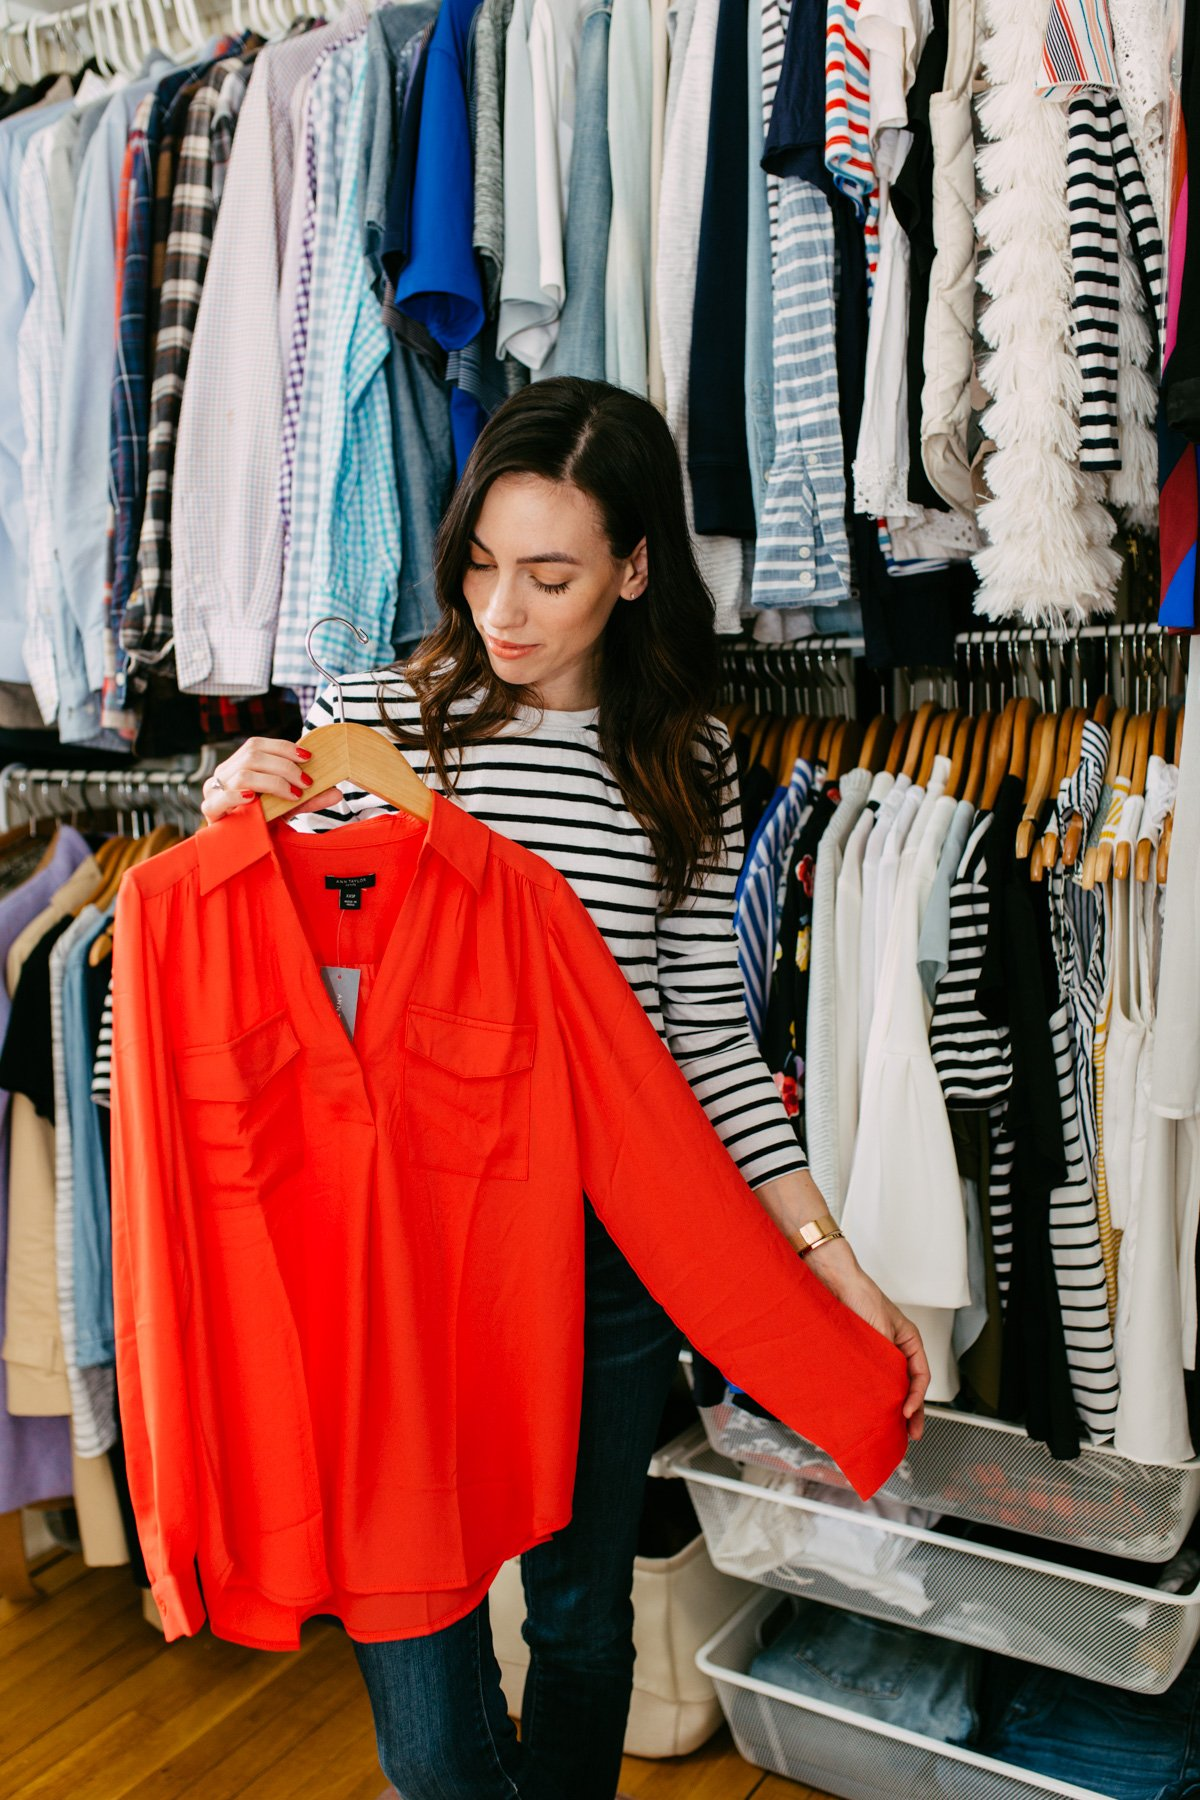 closet cleanout-wellesley and king-pittsburgh fashion blogger-@wellesleynking-22 | Postmark | How to Clean Out your Closet and Make Money featured by top Pittsburgh fashion blog Wellesley & King